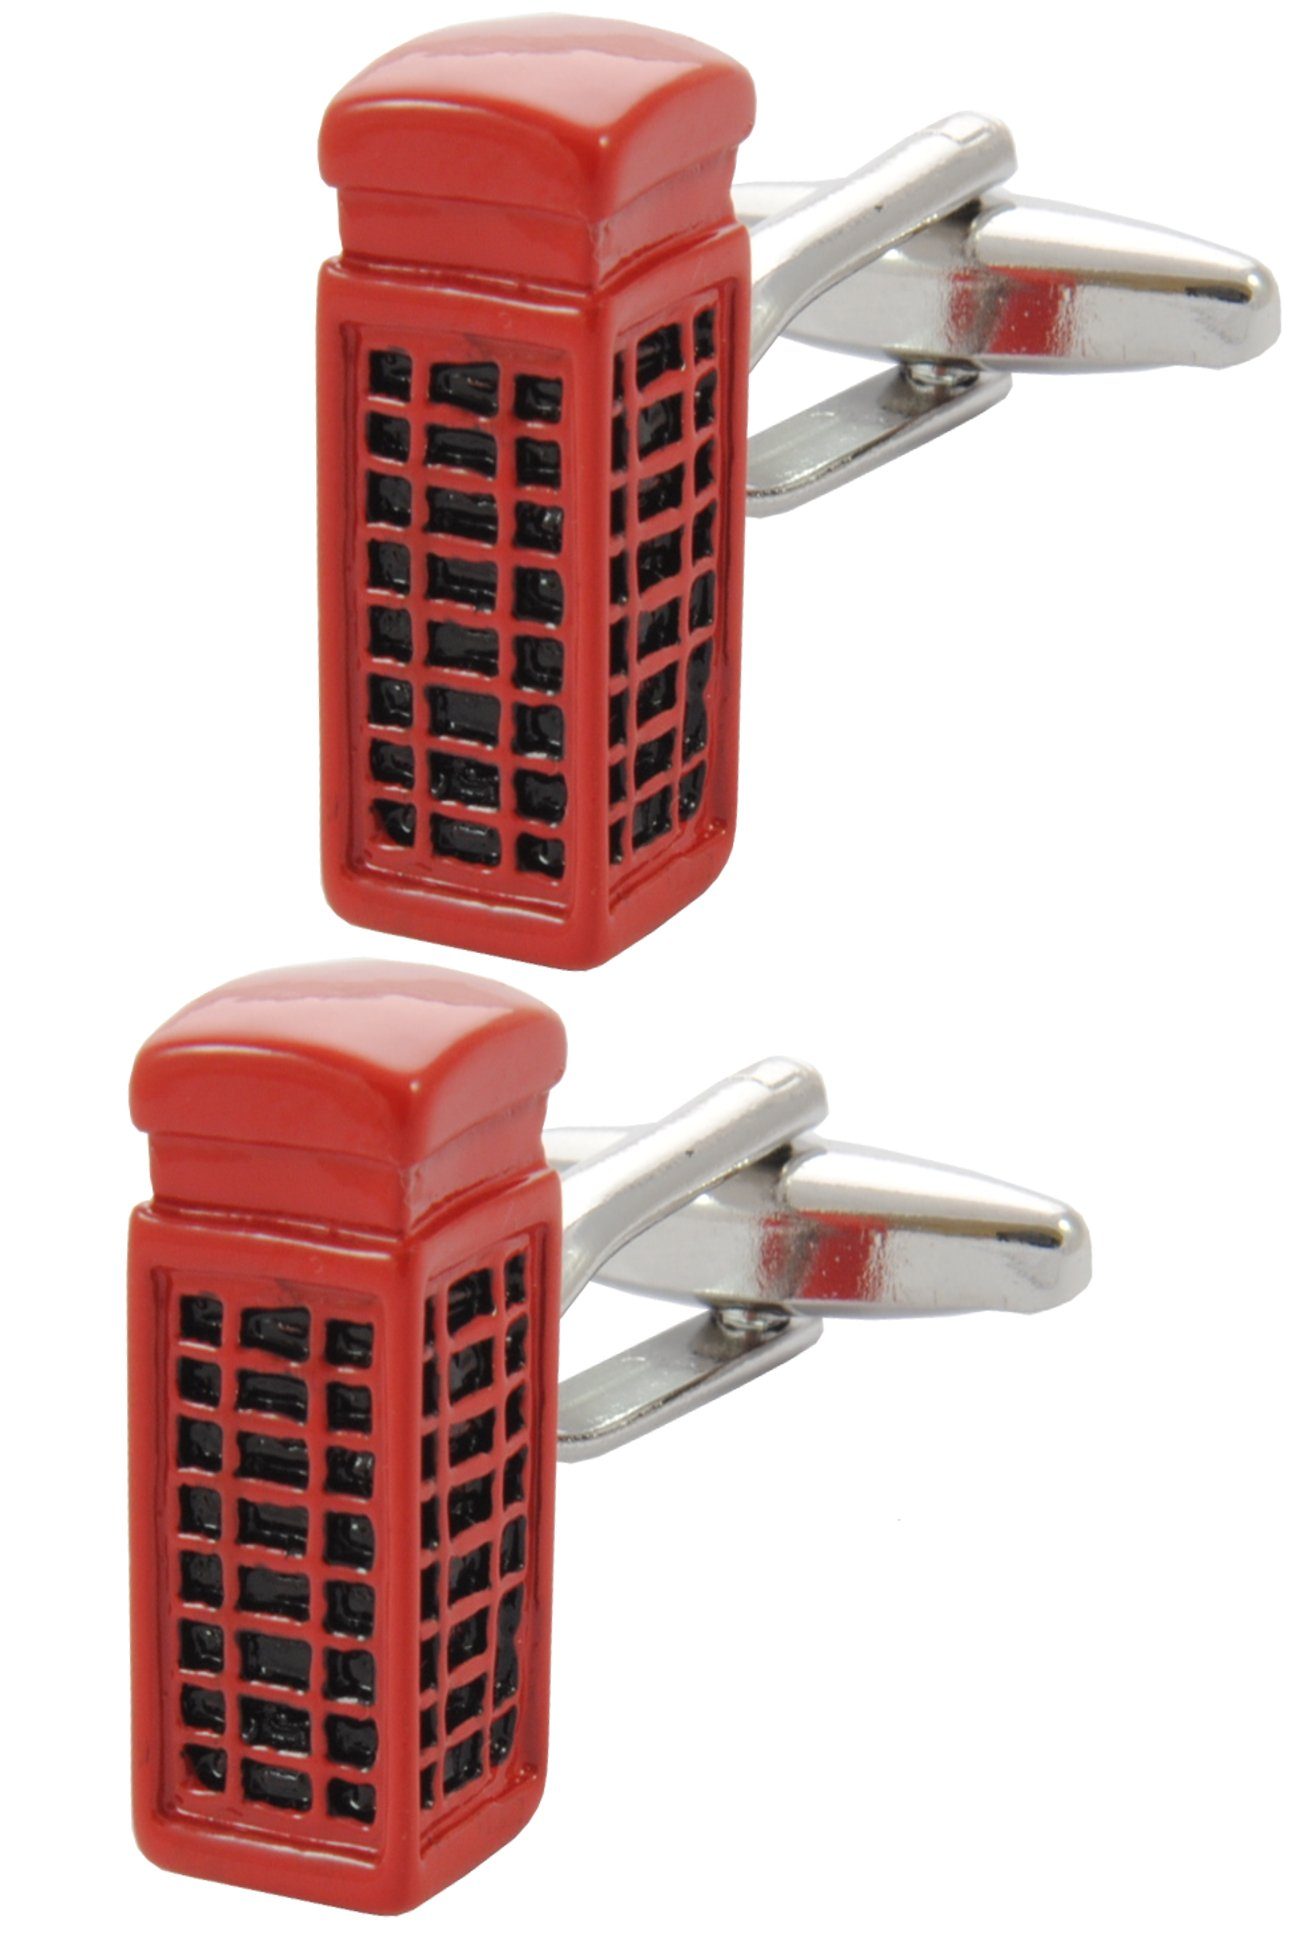 COLLAR AND CUFFS LONDON - Premium Cufflinks with Gift Box - London Telephone Box - Phone England British Kiosk Crown - Red Colour by COLLAR AND CUFFS LONDON